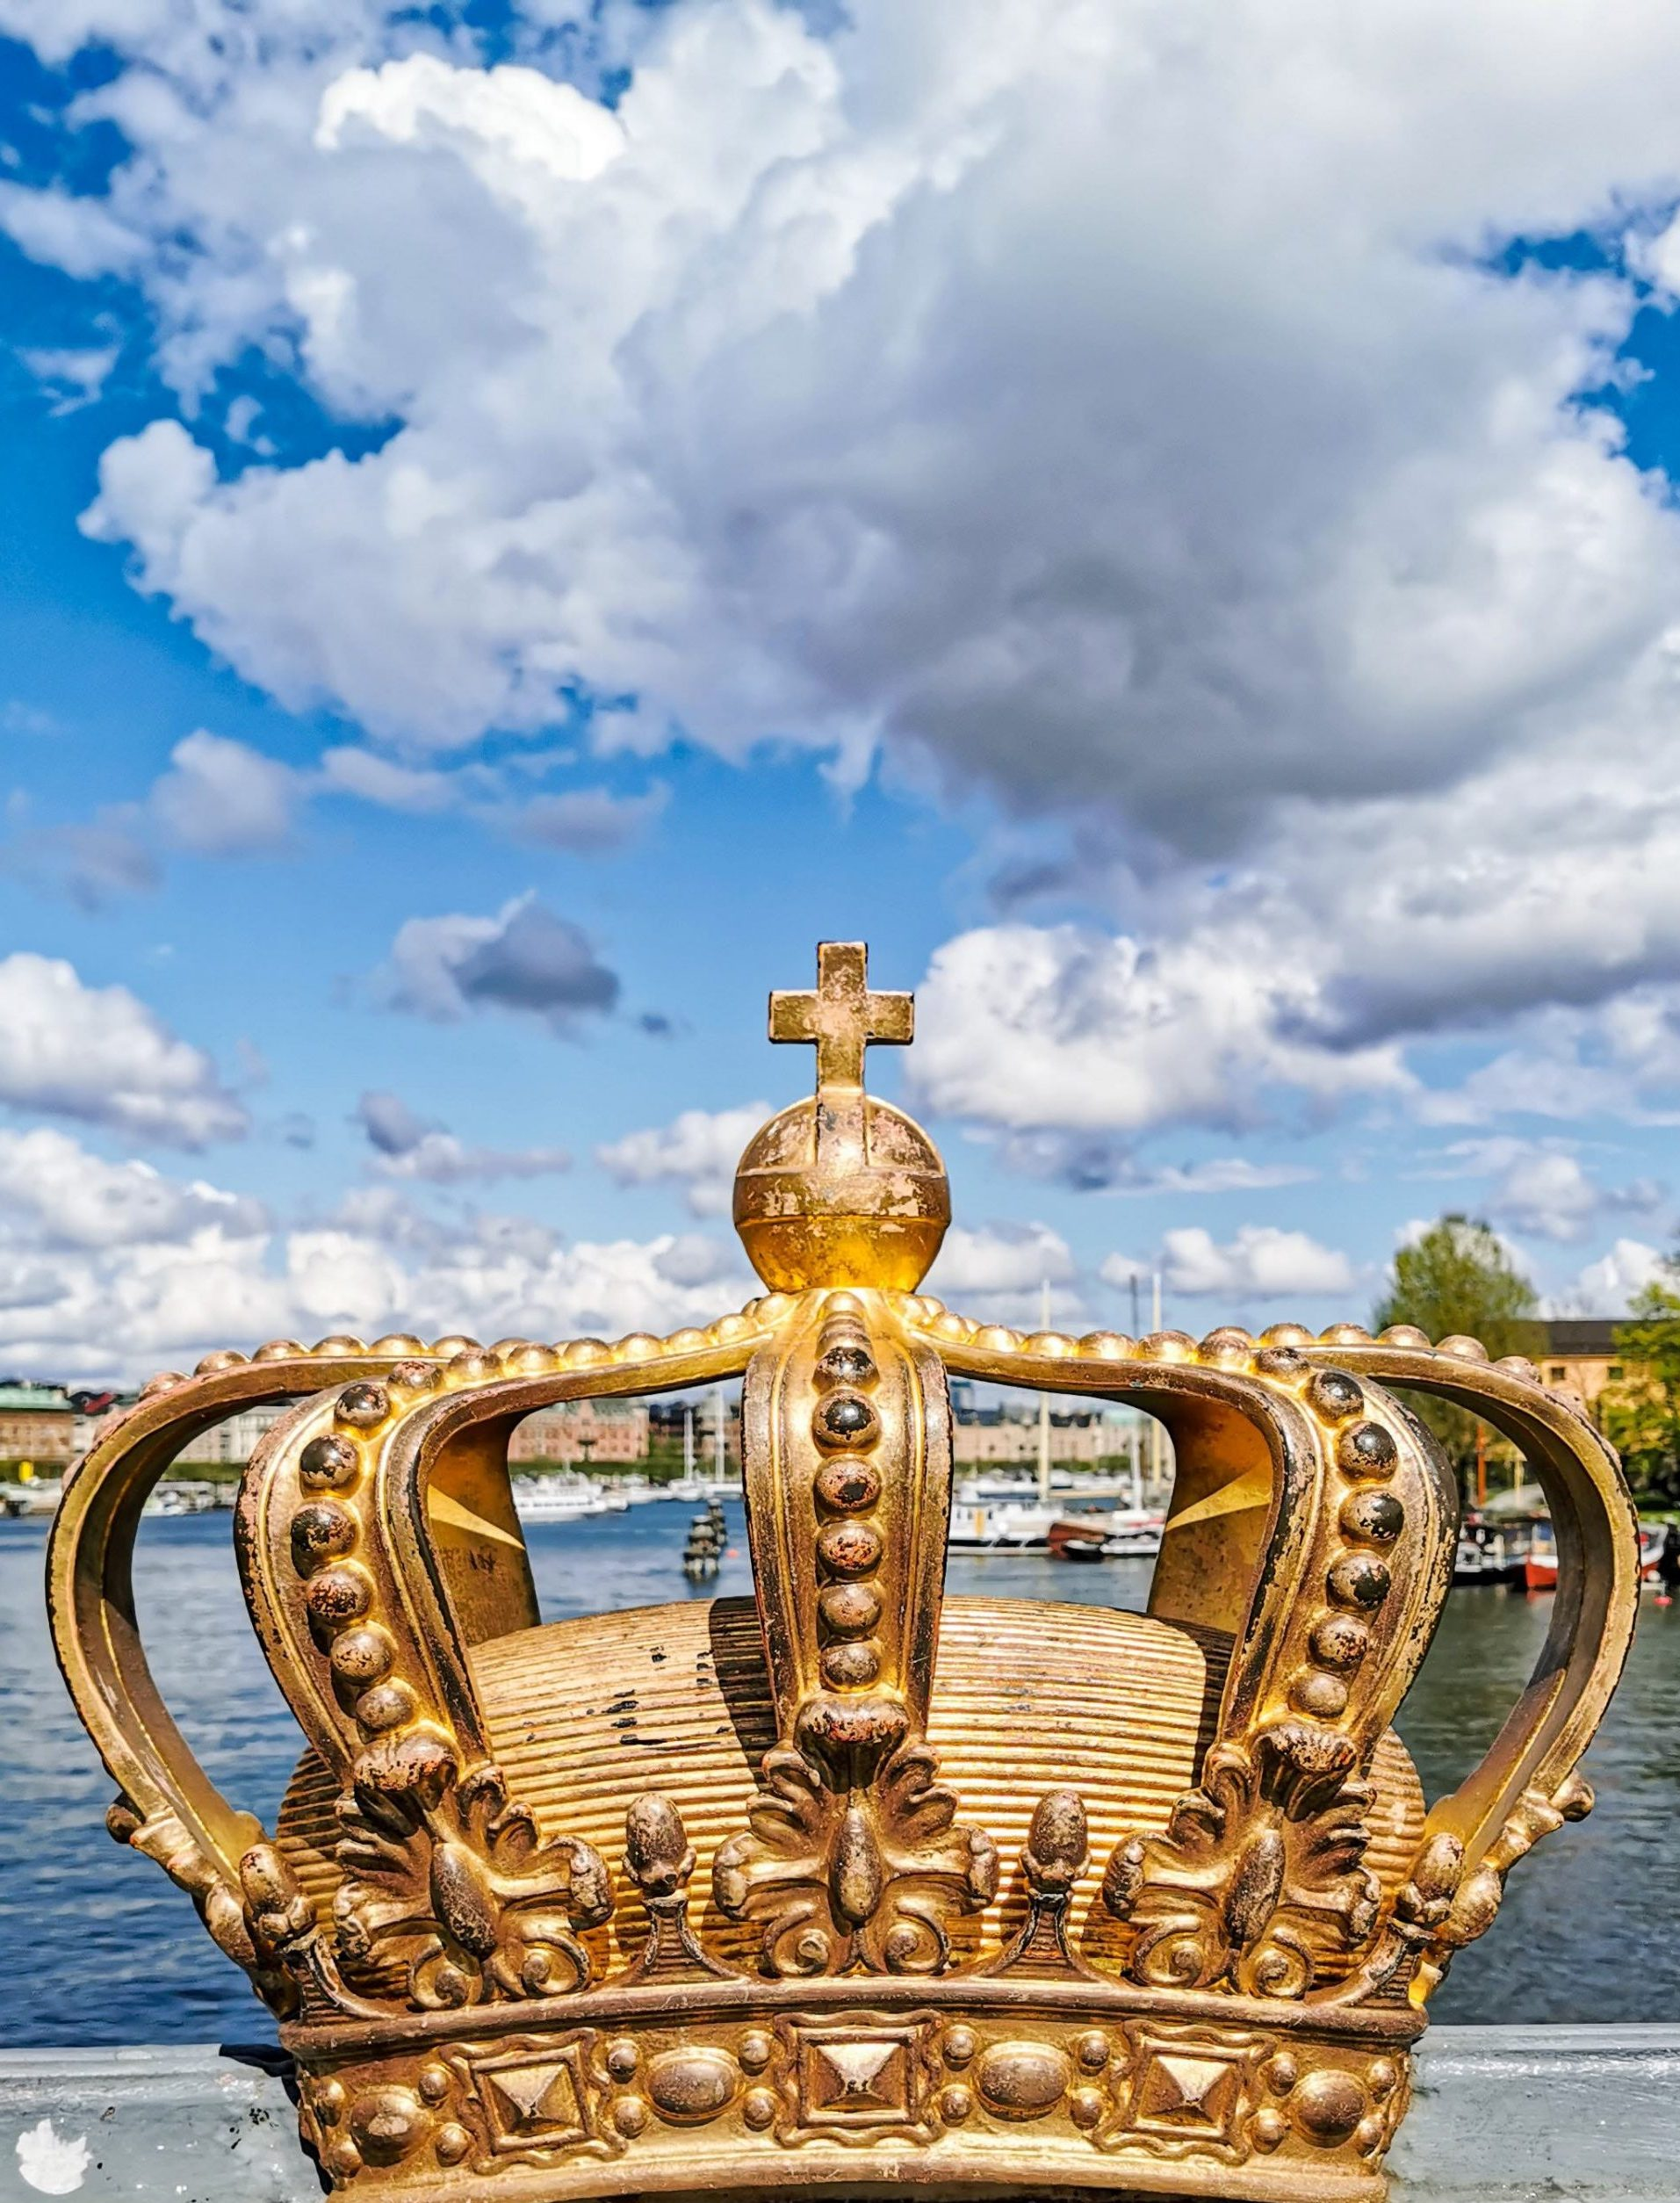 gold crown against a blue sky